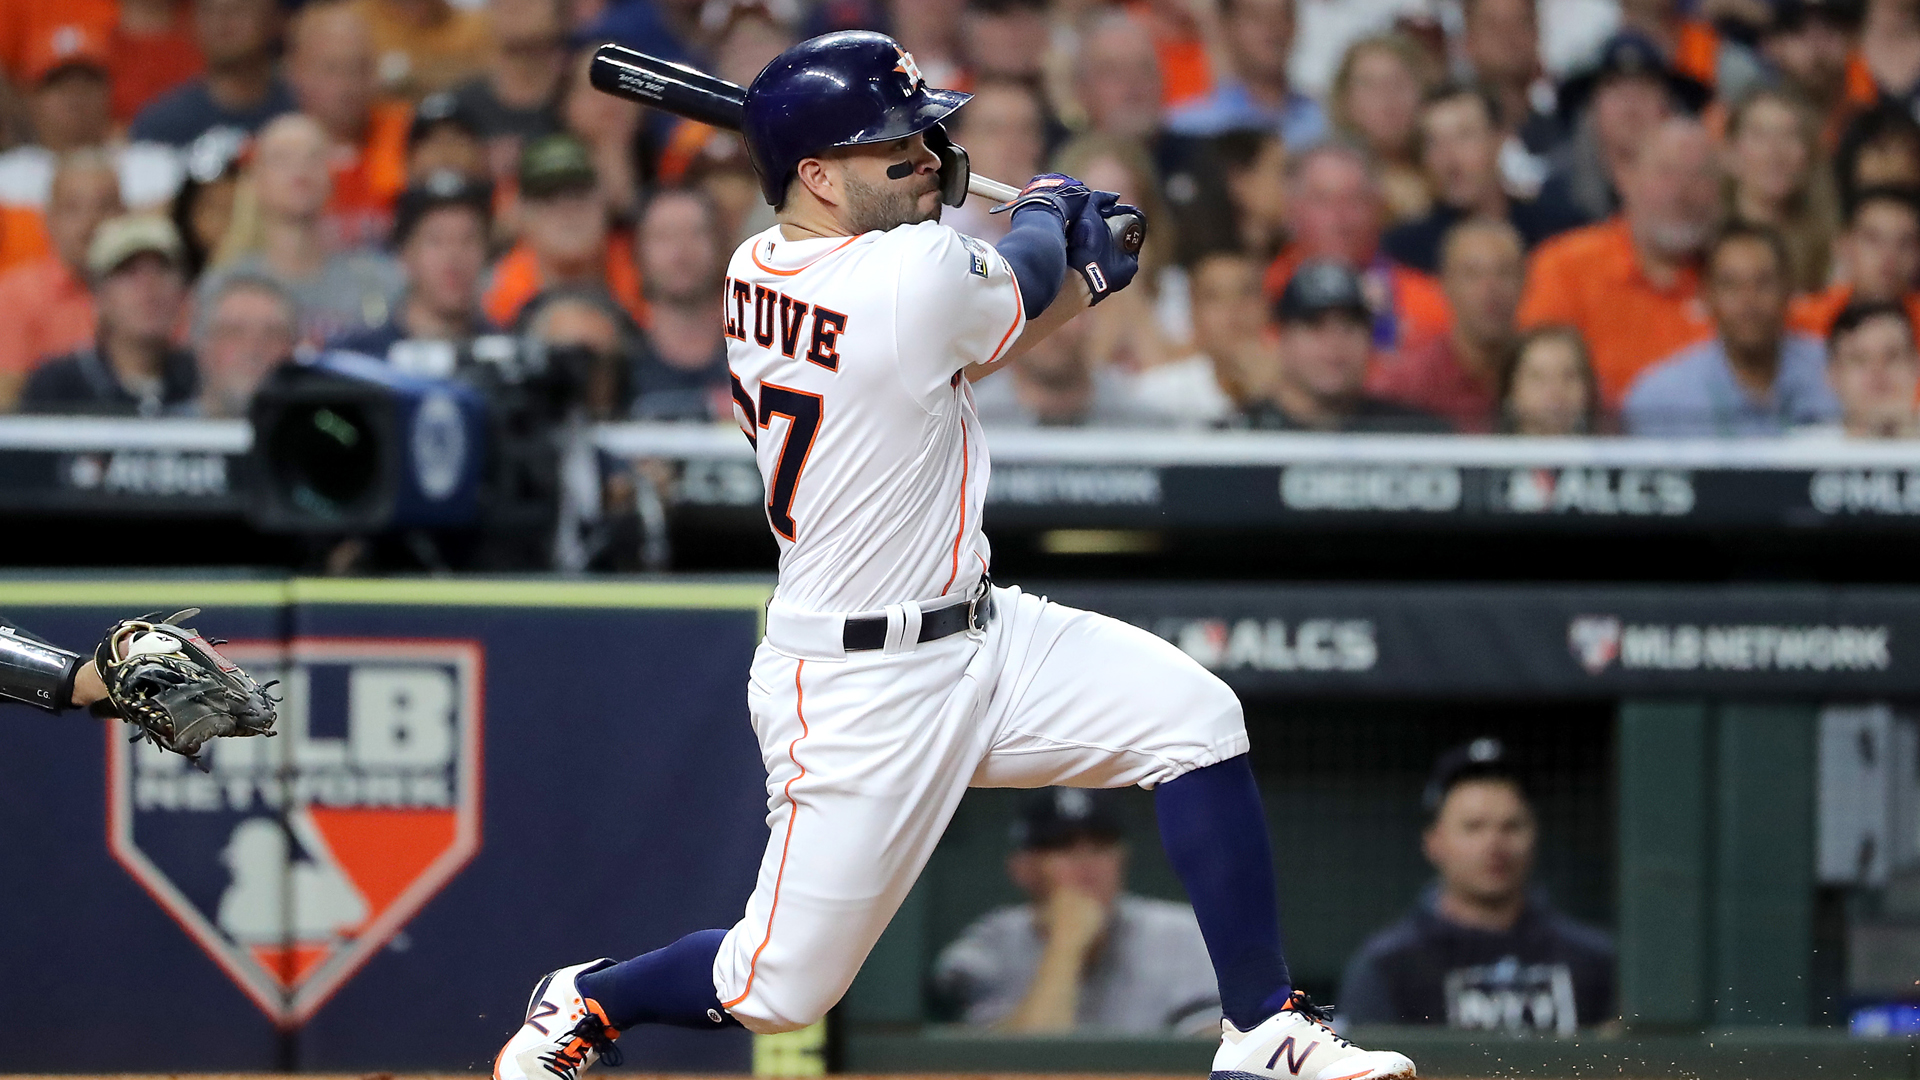 Jose Altuve #27 of the Houston Astros hits a double against the New York Yankees during the first inning in game six of the American League Championship Series at Minute Maid Park on October 19, 2019 in Houston, Texas. (Credit: Elsa/Getty Images)